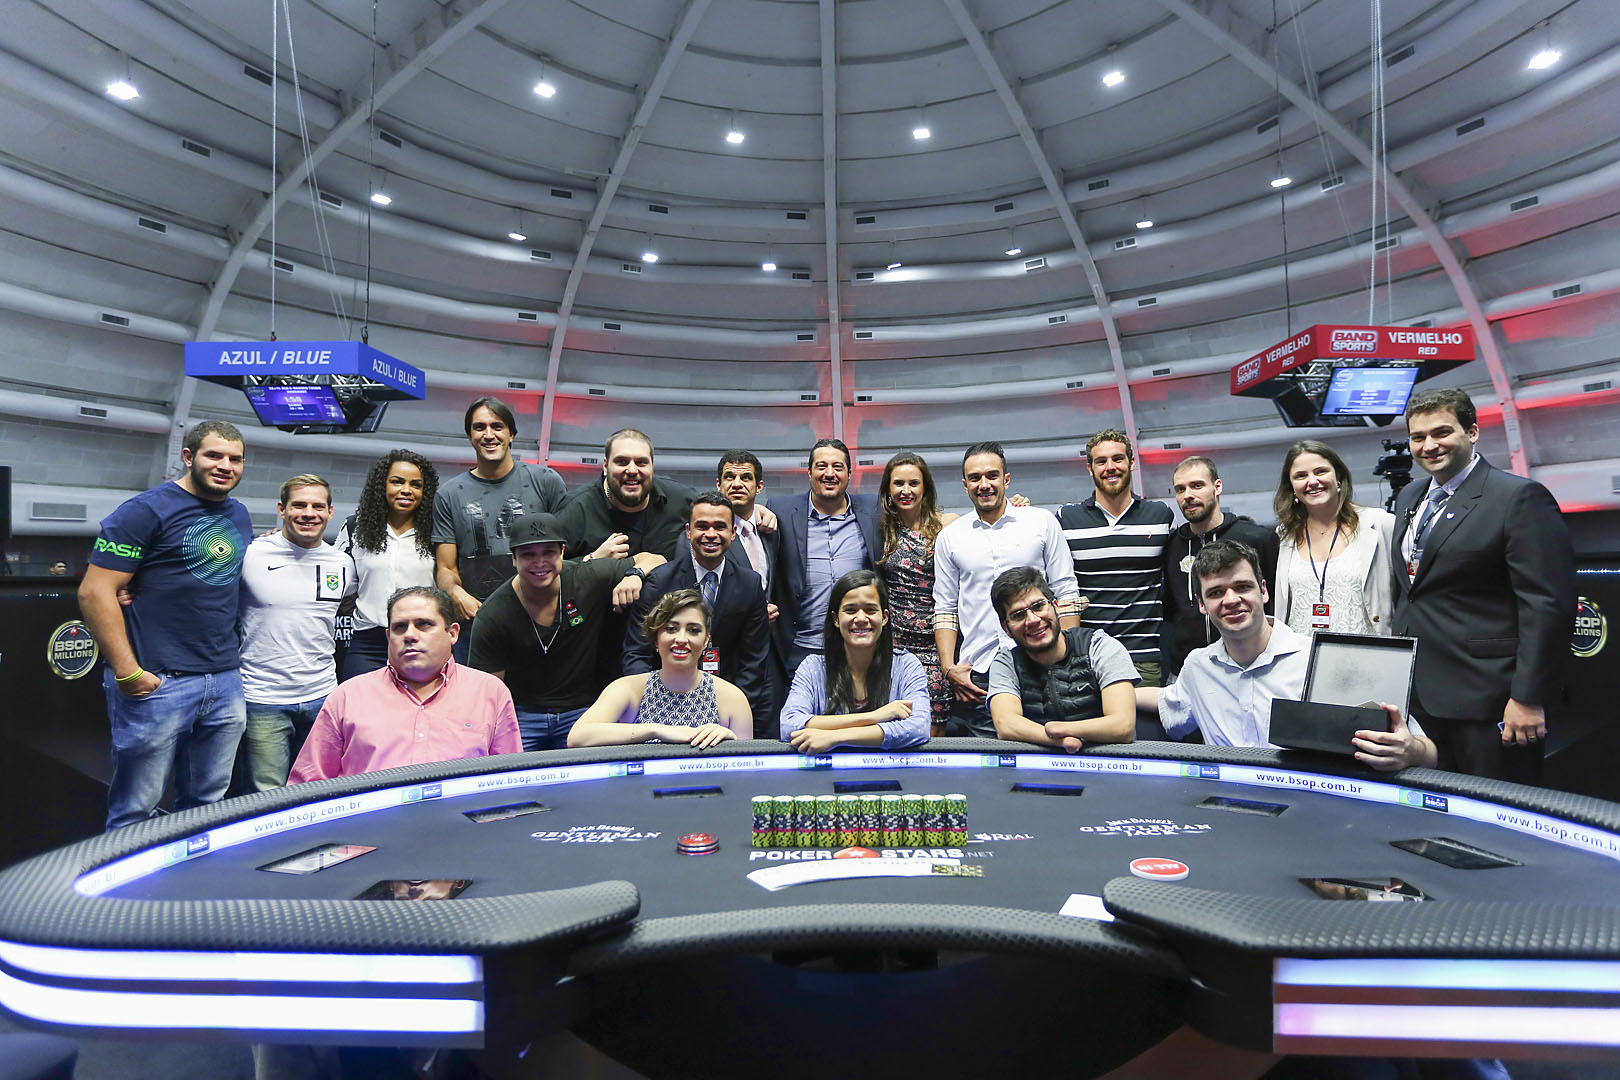 BRAZILIAN SERIES OF POKER SHOWS POKER IS A GAME FOR EVERYONE